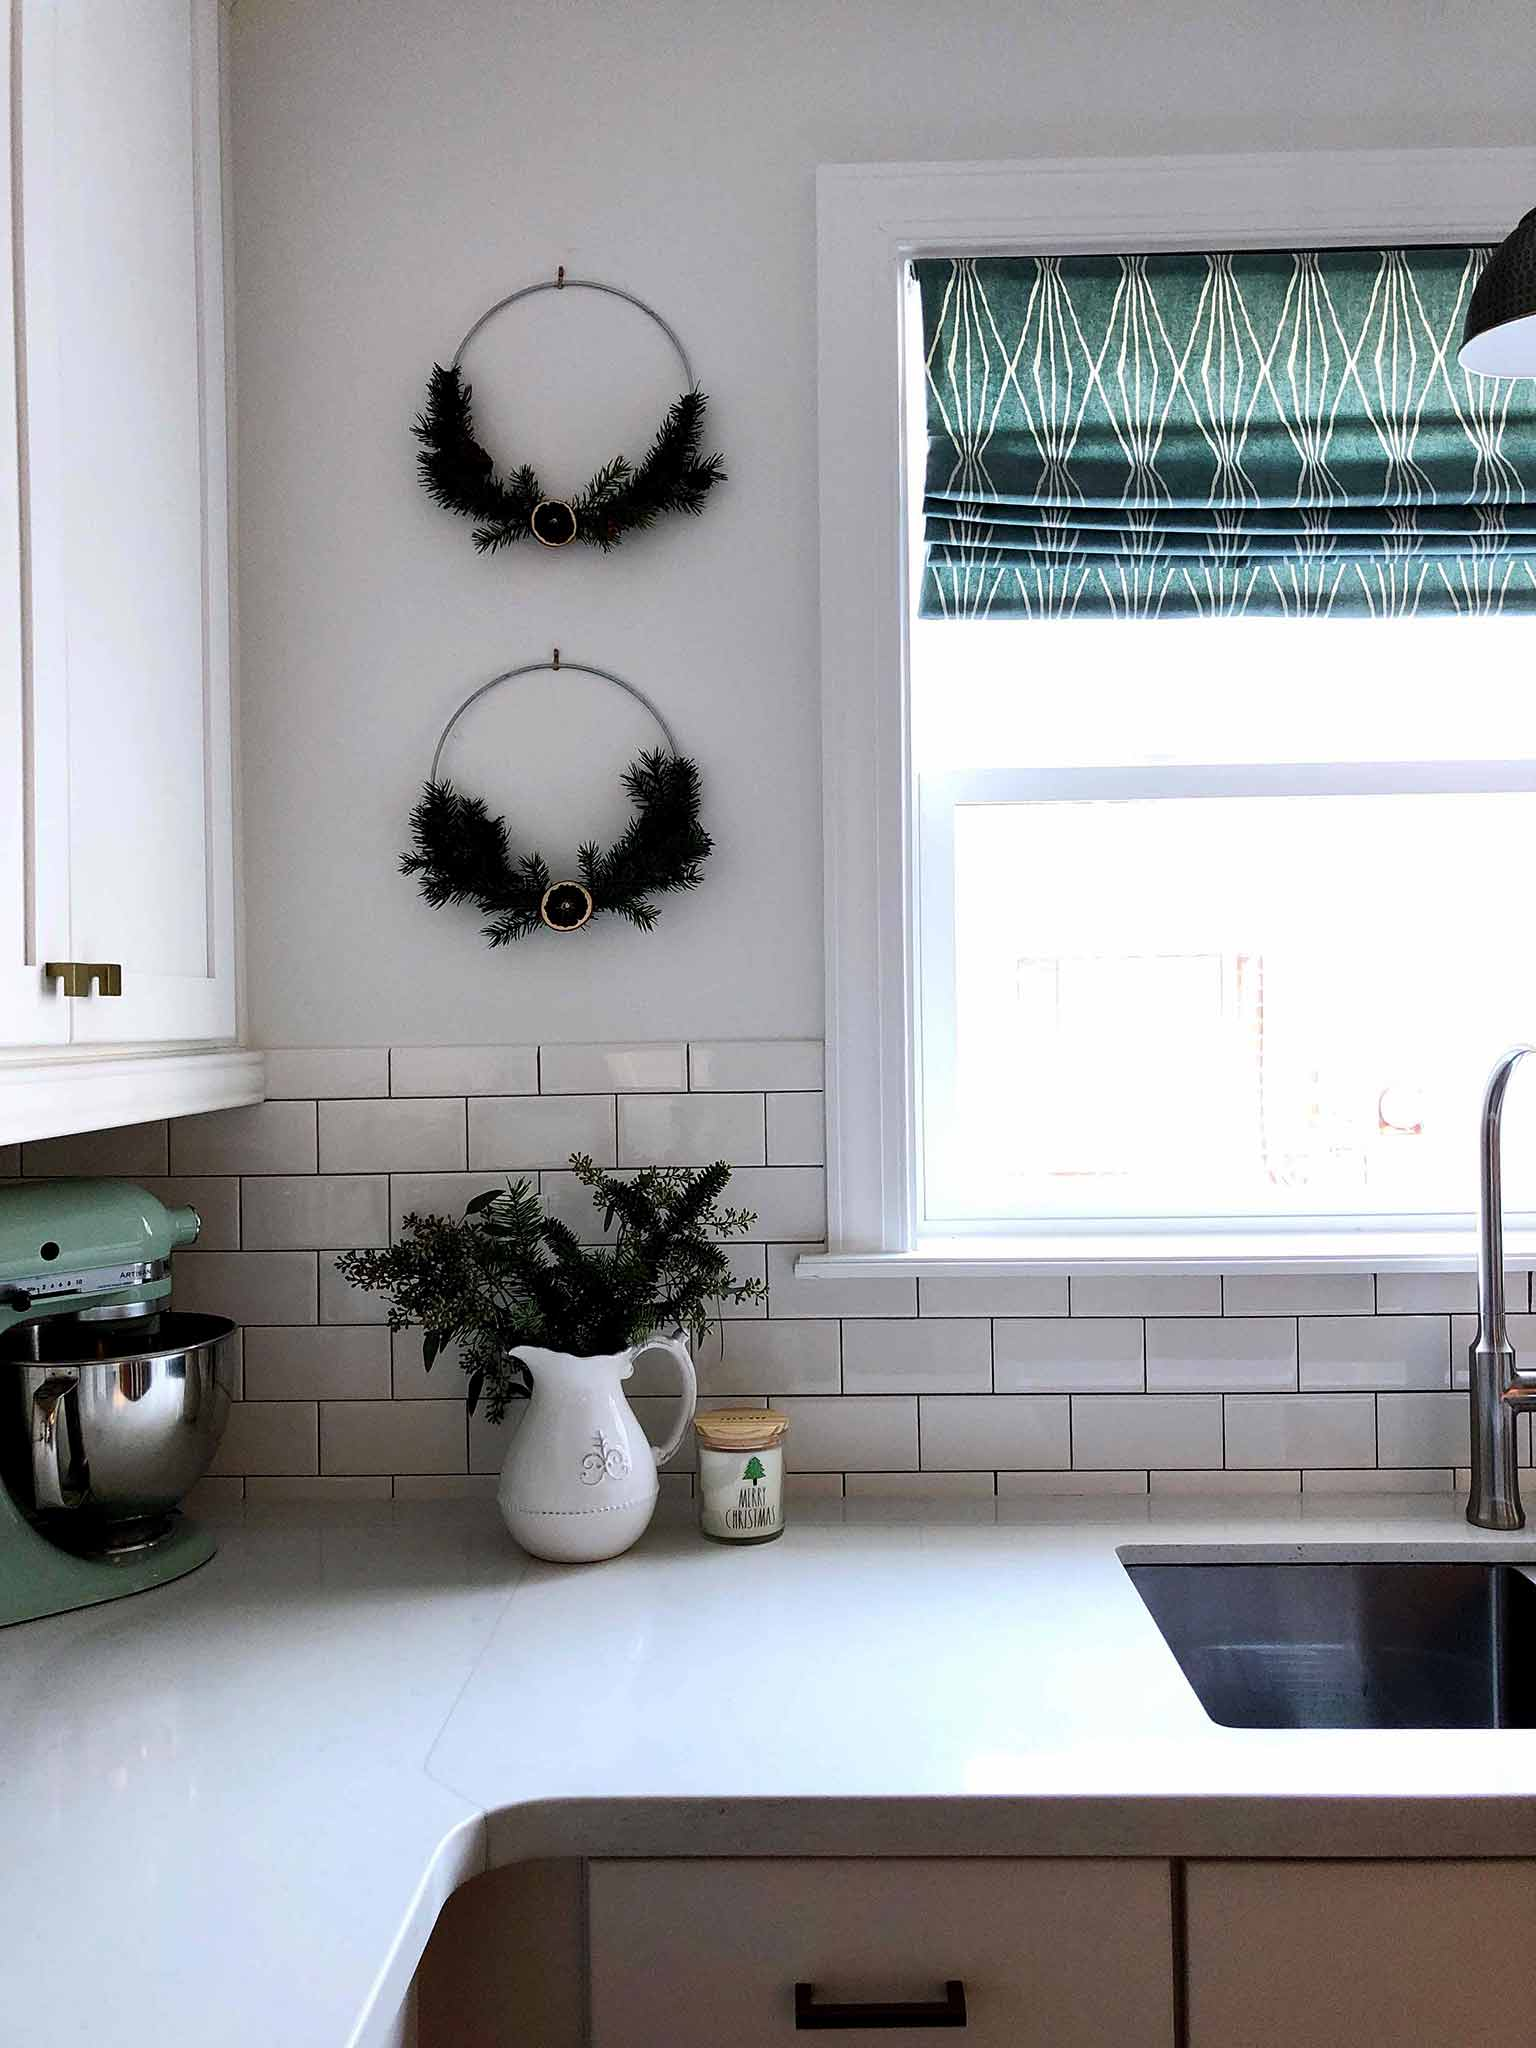 Kitchen decorated with hoop wreaths - Simple Yet Cozy Christmas Decor - That Homebird Life Blog #christmasdecor #christmasinspiration